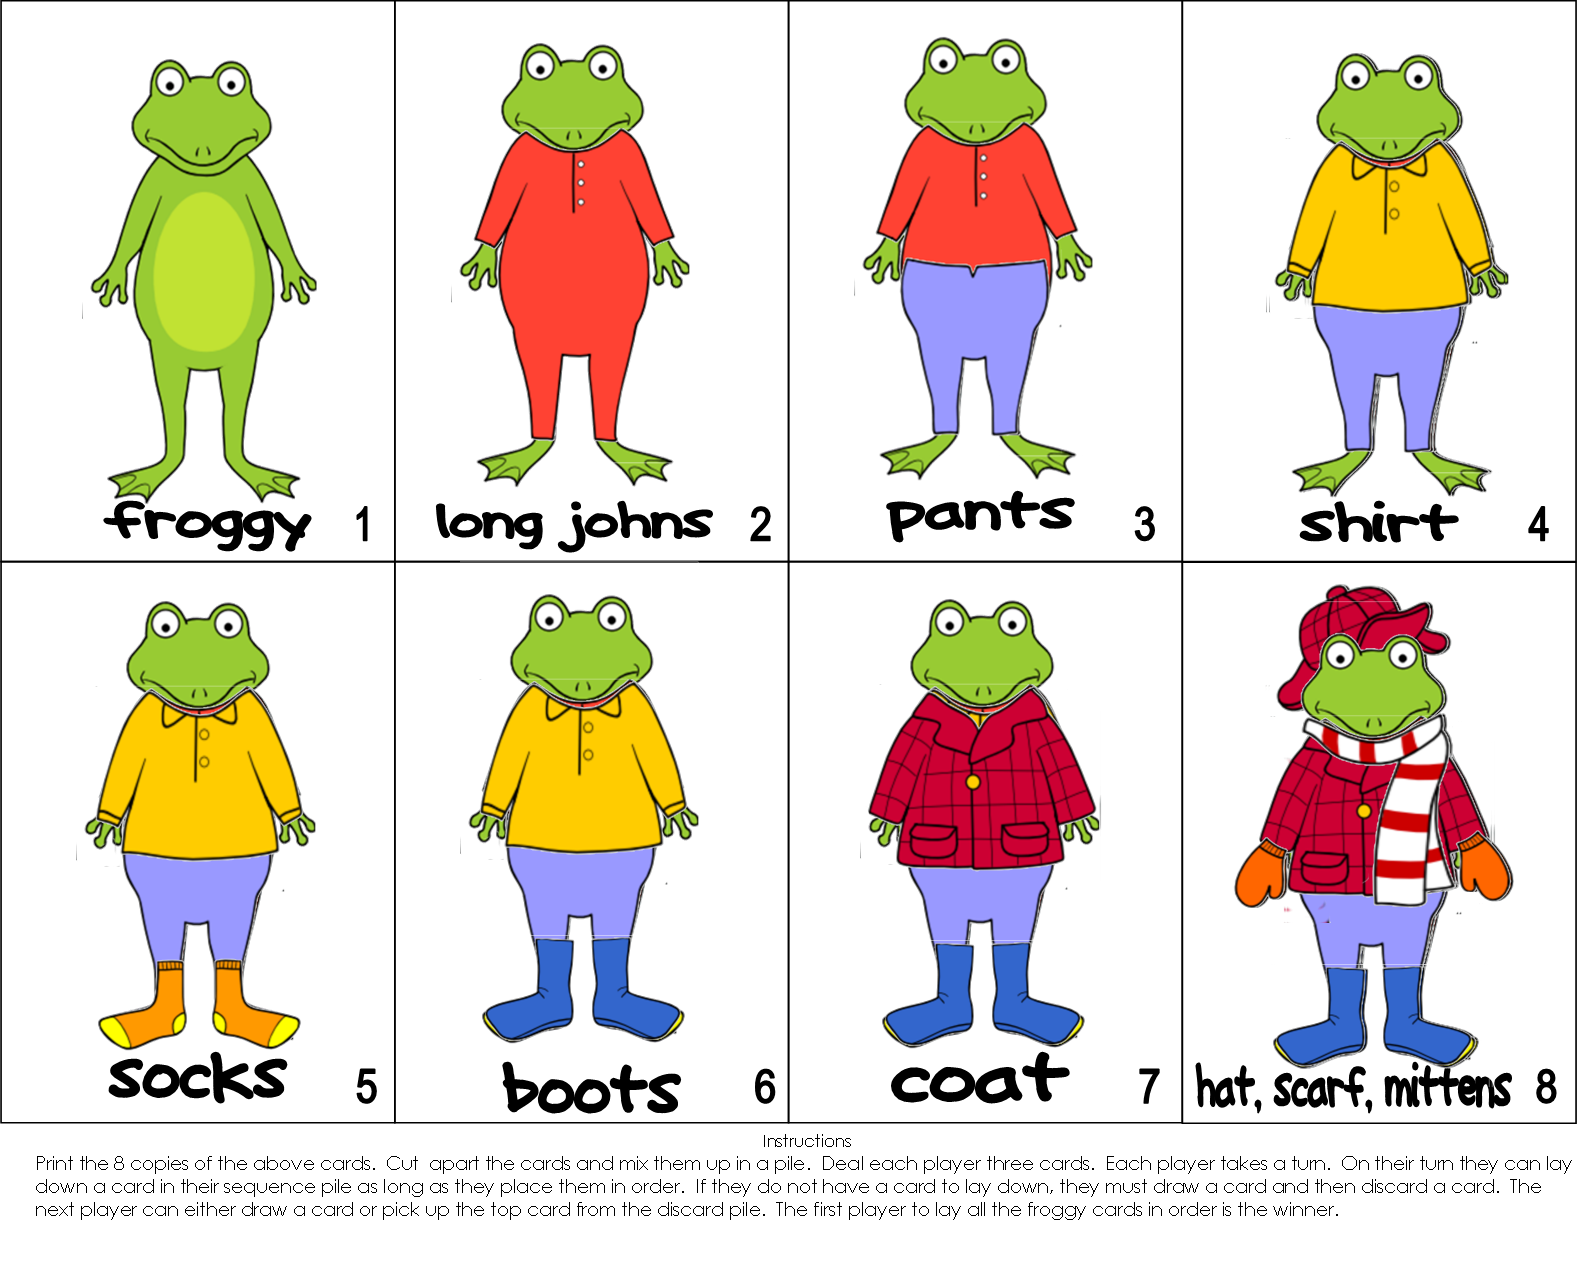 Froggy book clipart jpg royalty free library The PaperBag Teachers: Froggy Gets Dressed jpg royalty free library